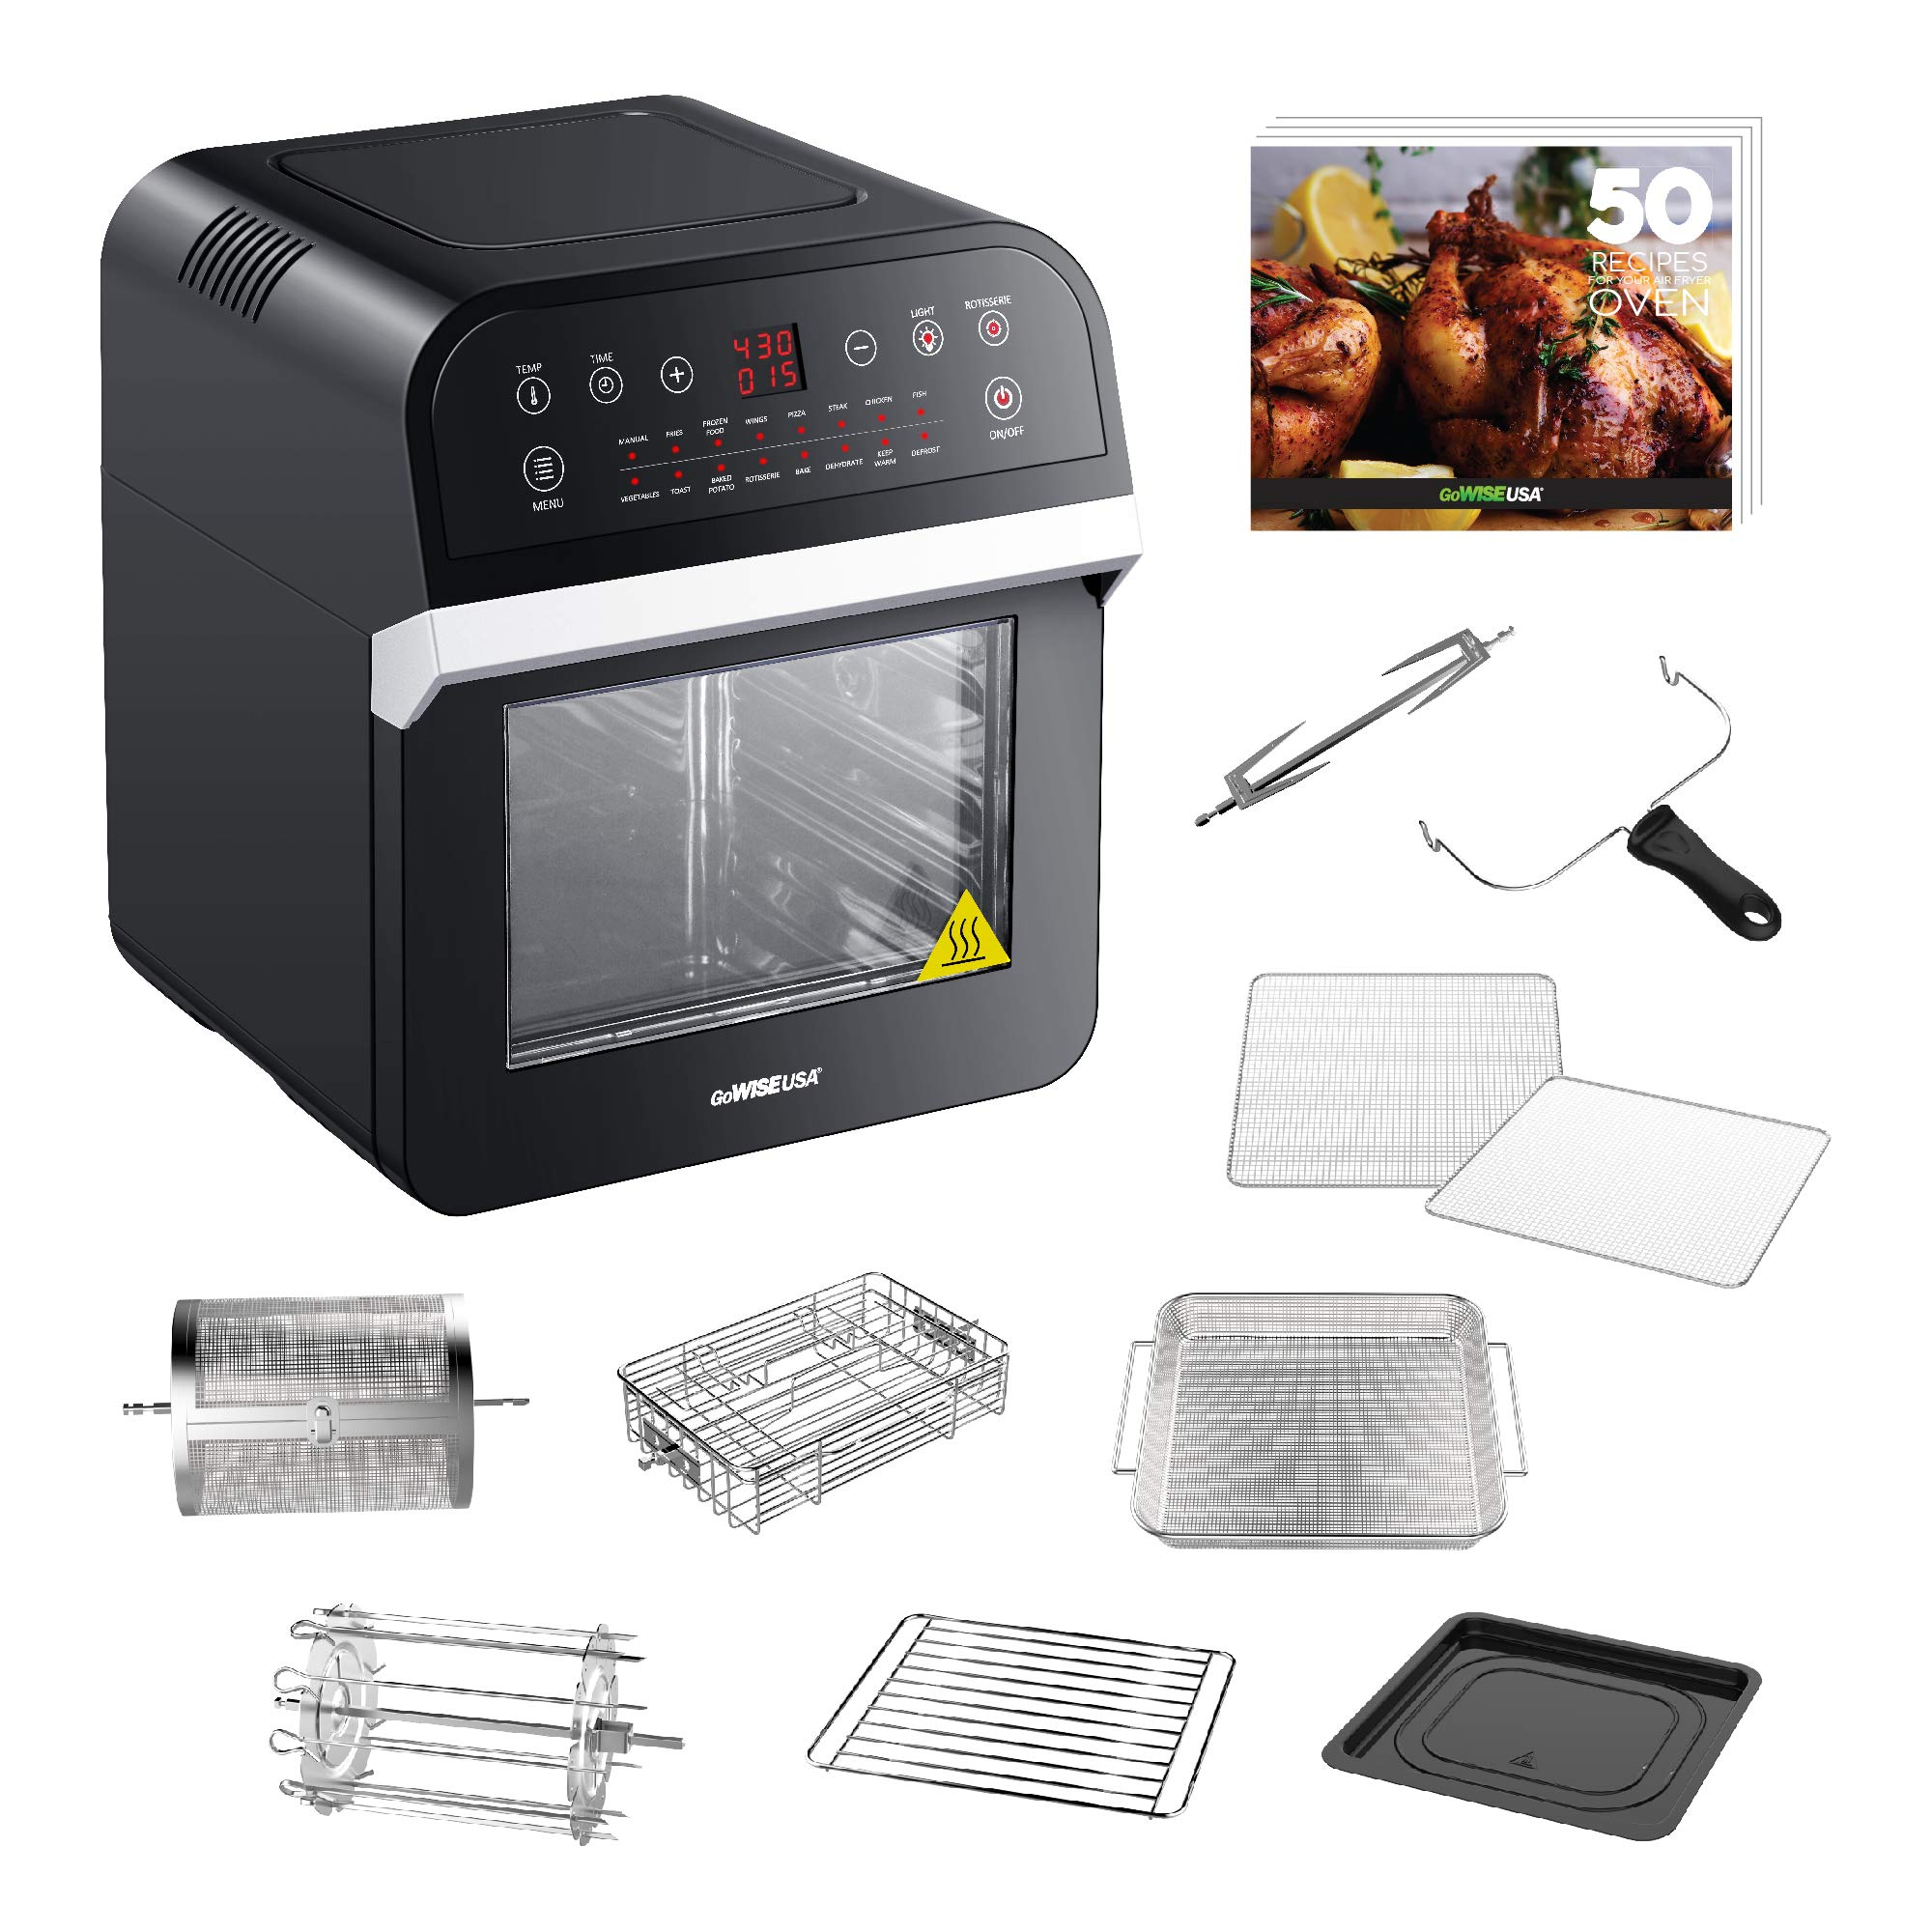 GoWISE USA GW44800-O Deluxe 12.7-Quarts 15-in-1 Electric Air Fryer Oven w/Rotisserie and Dehydrator + 50 Recipes (Black) by GoWISE USA